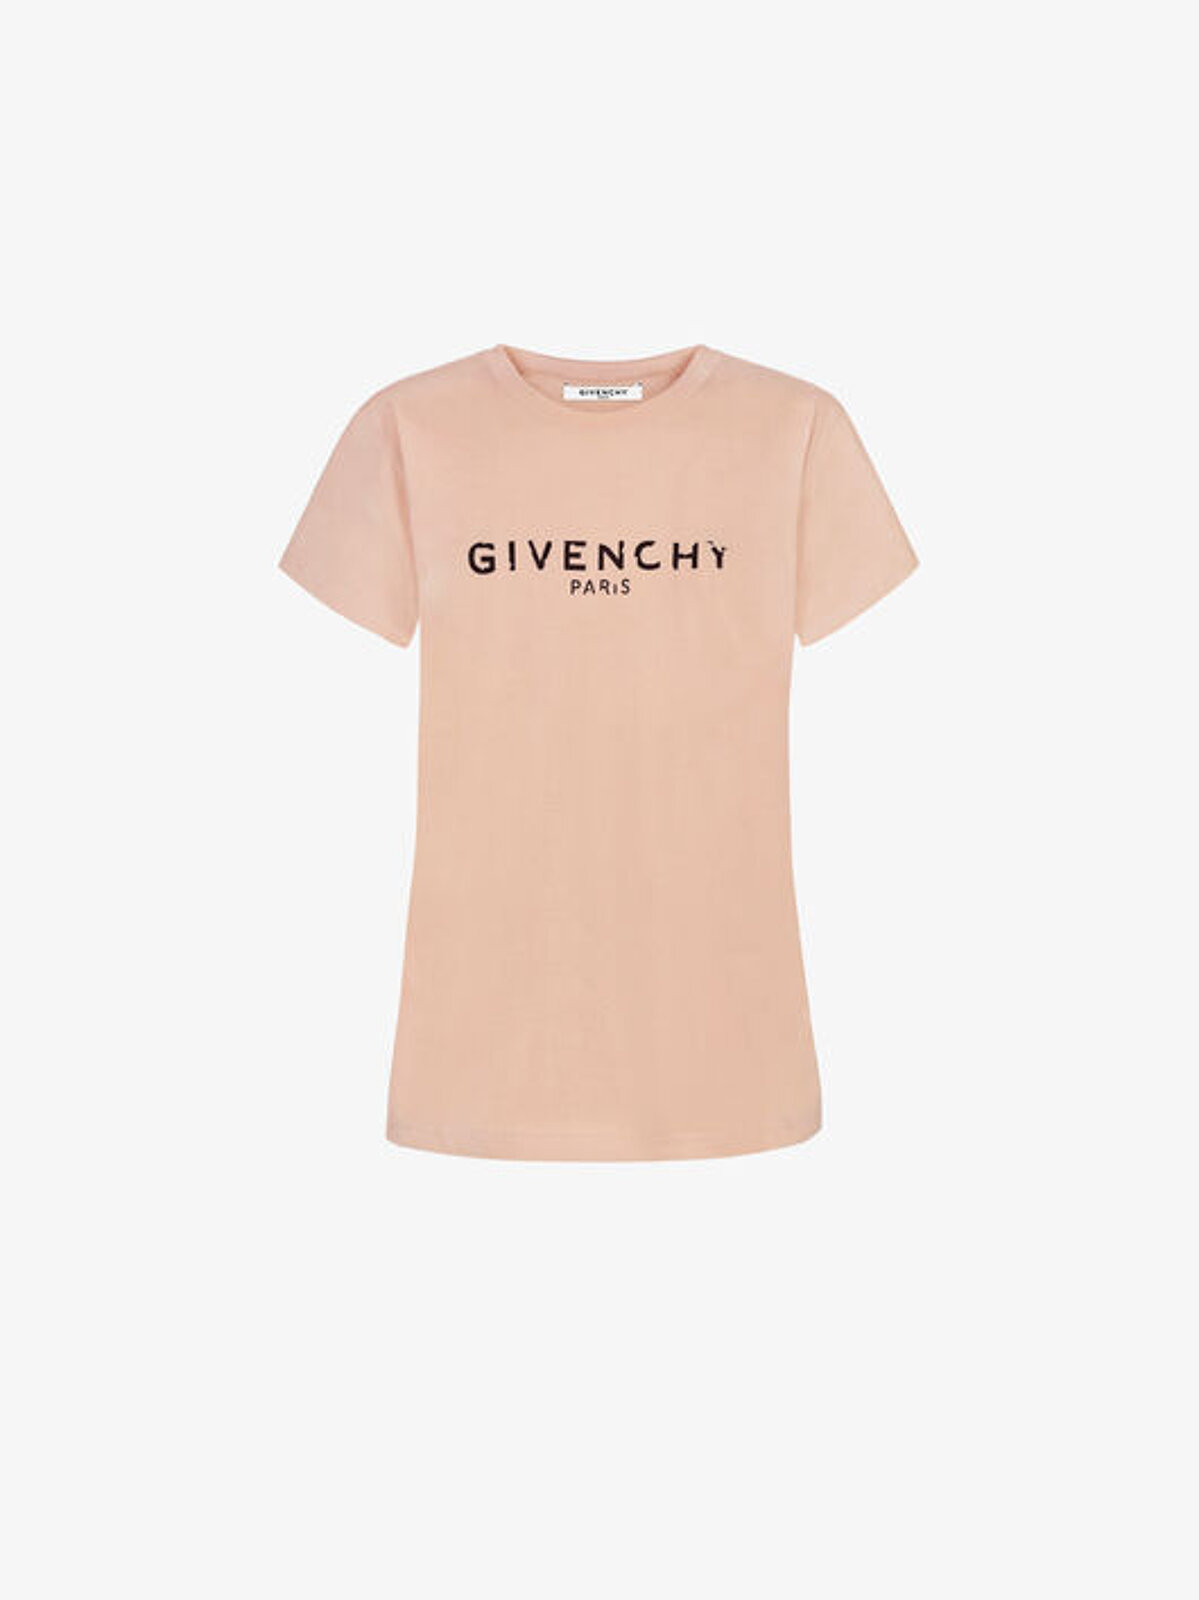 T-Shirt Aderente Con Stampa Icare - Givenchy